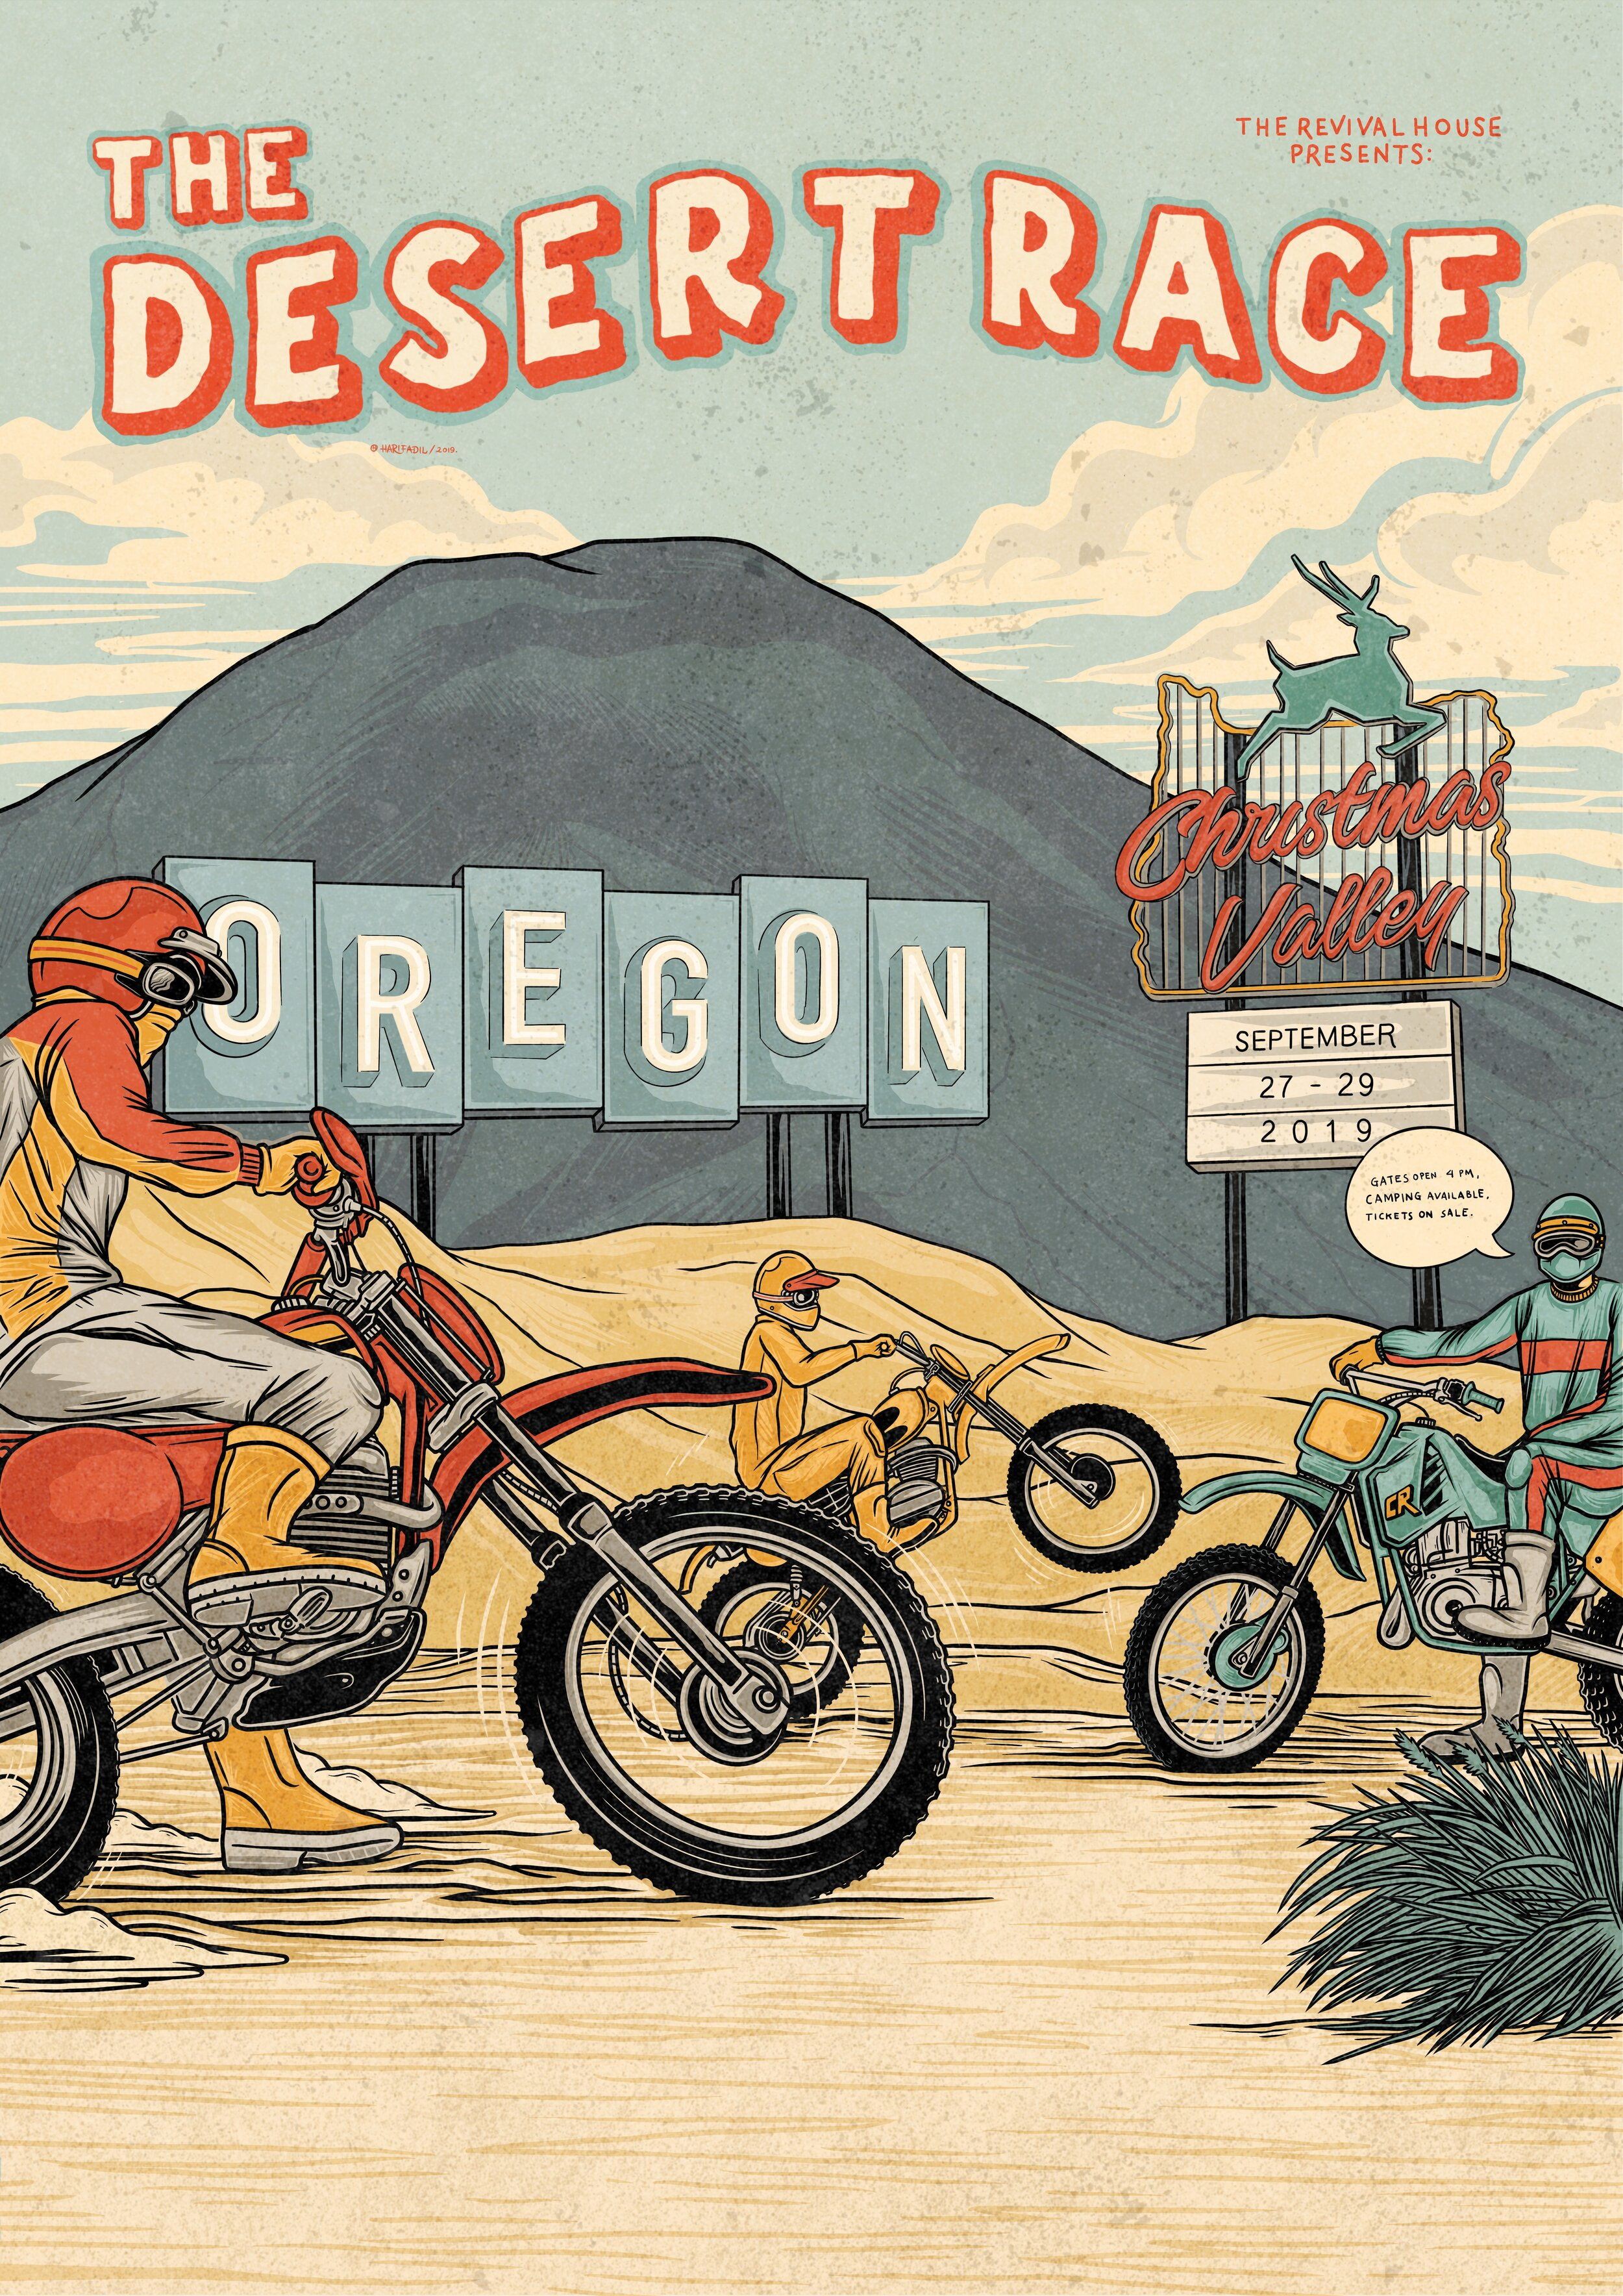 Official 2019 California Desert Race Poster by  @Harifadil